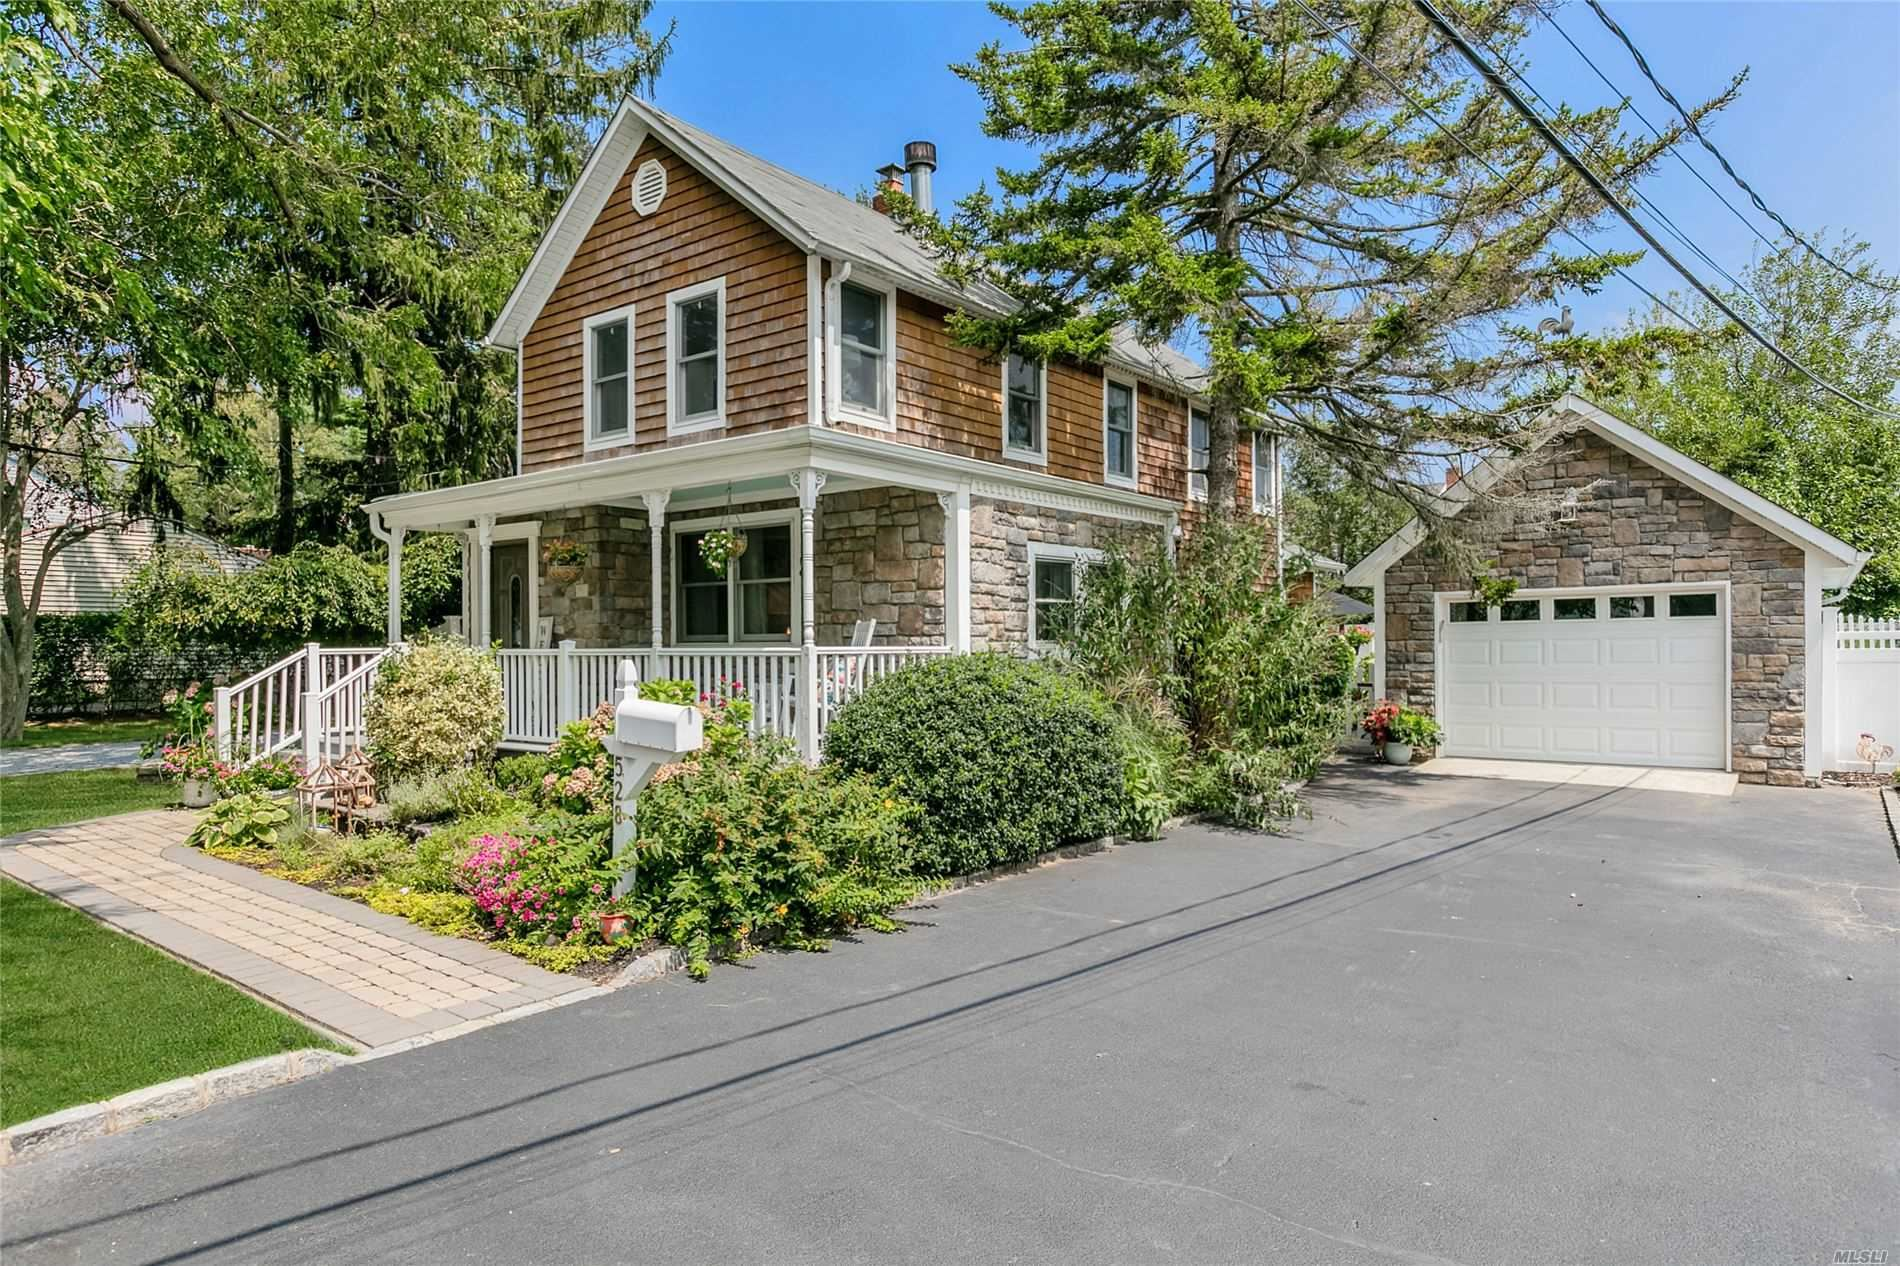 528 5th St, East Northport, NY 11731 - MLS#: 3241570